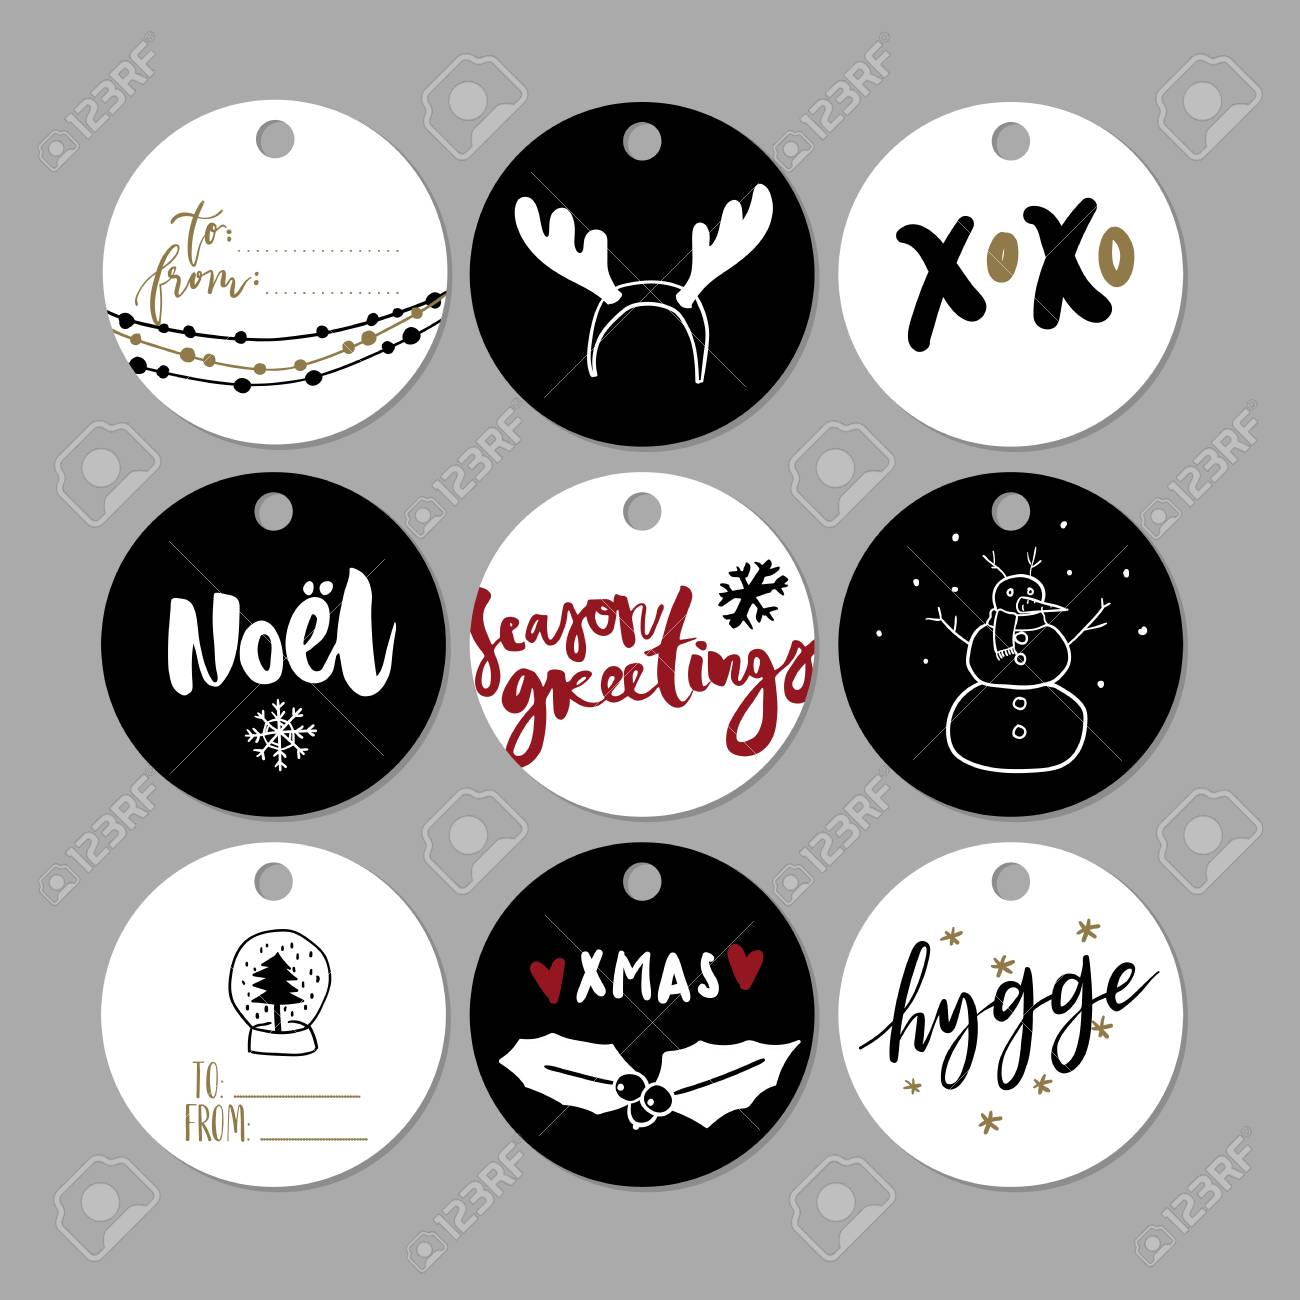 image relating to Cute Gift Tags Printable referred to as Established of doodle Xmas reward tags. Vector hand drawn lovely icons